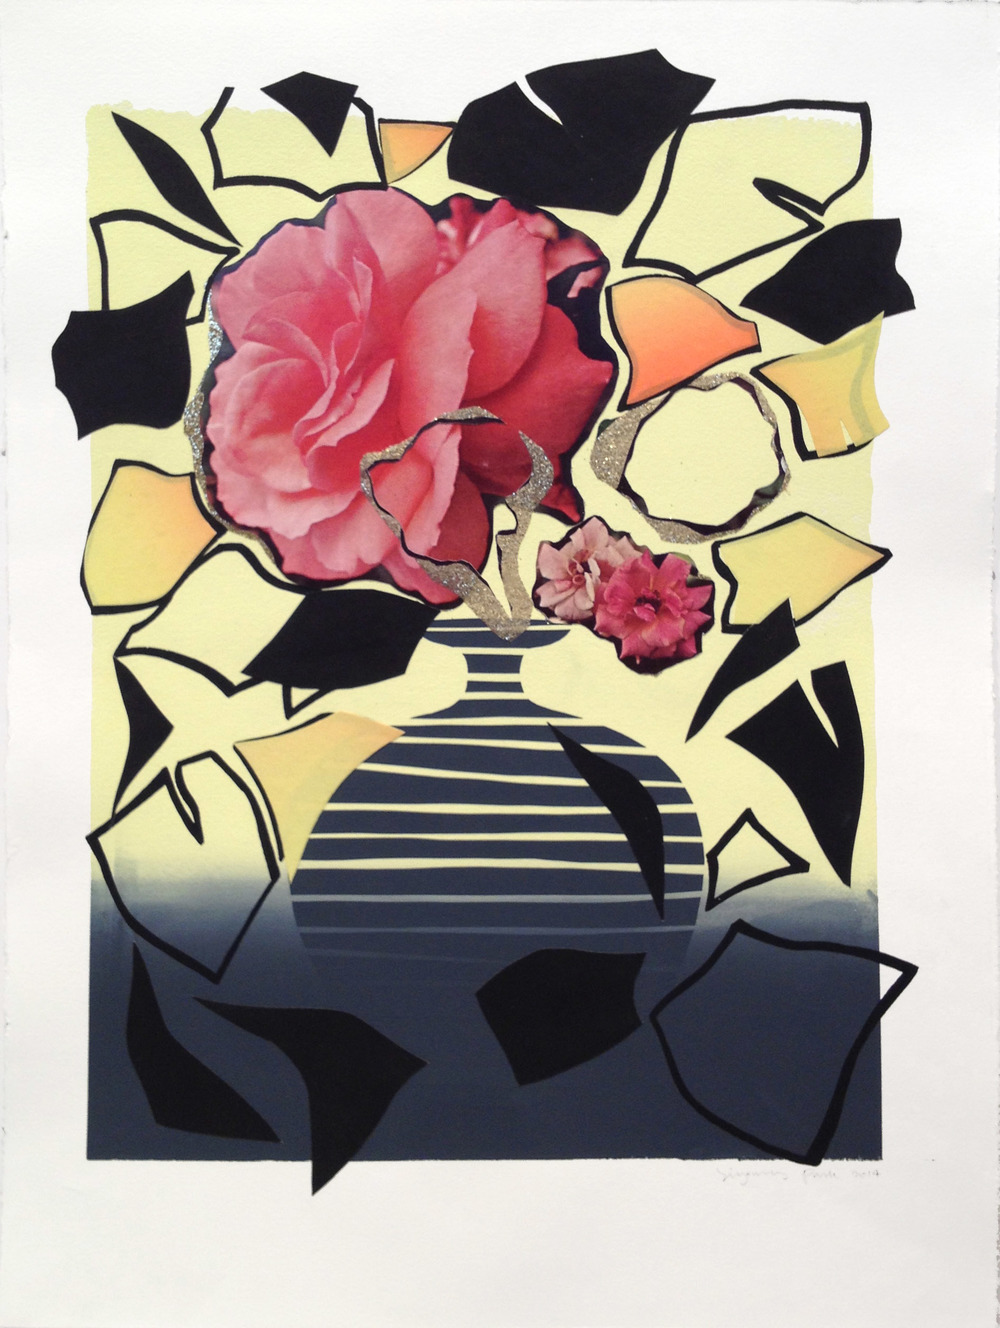 Composition rose  2014  Screenprinting and collage  20 x 15 in.